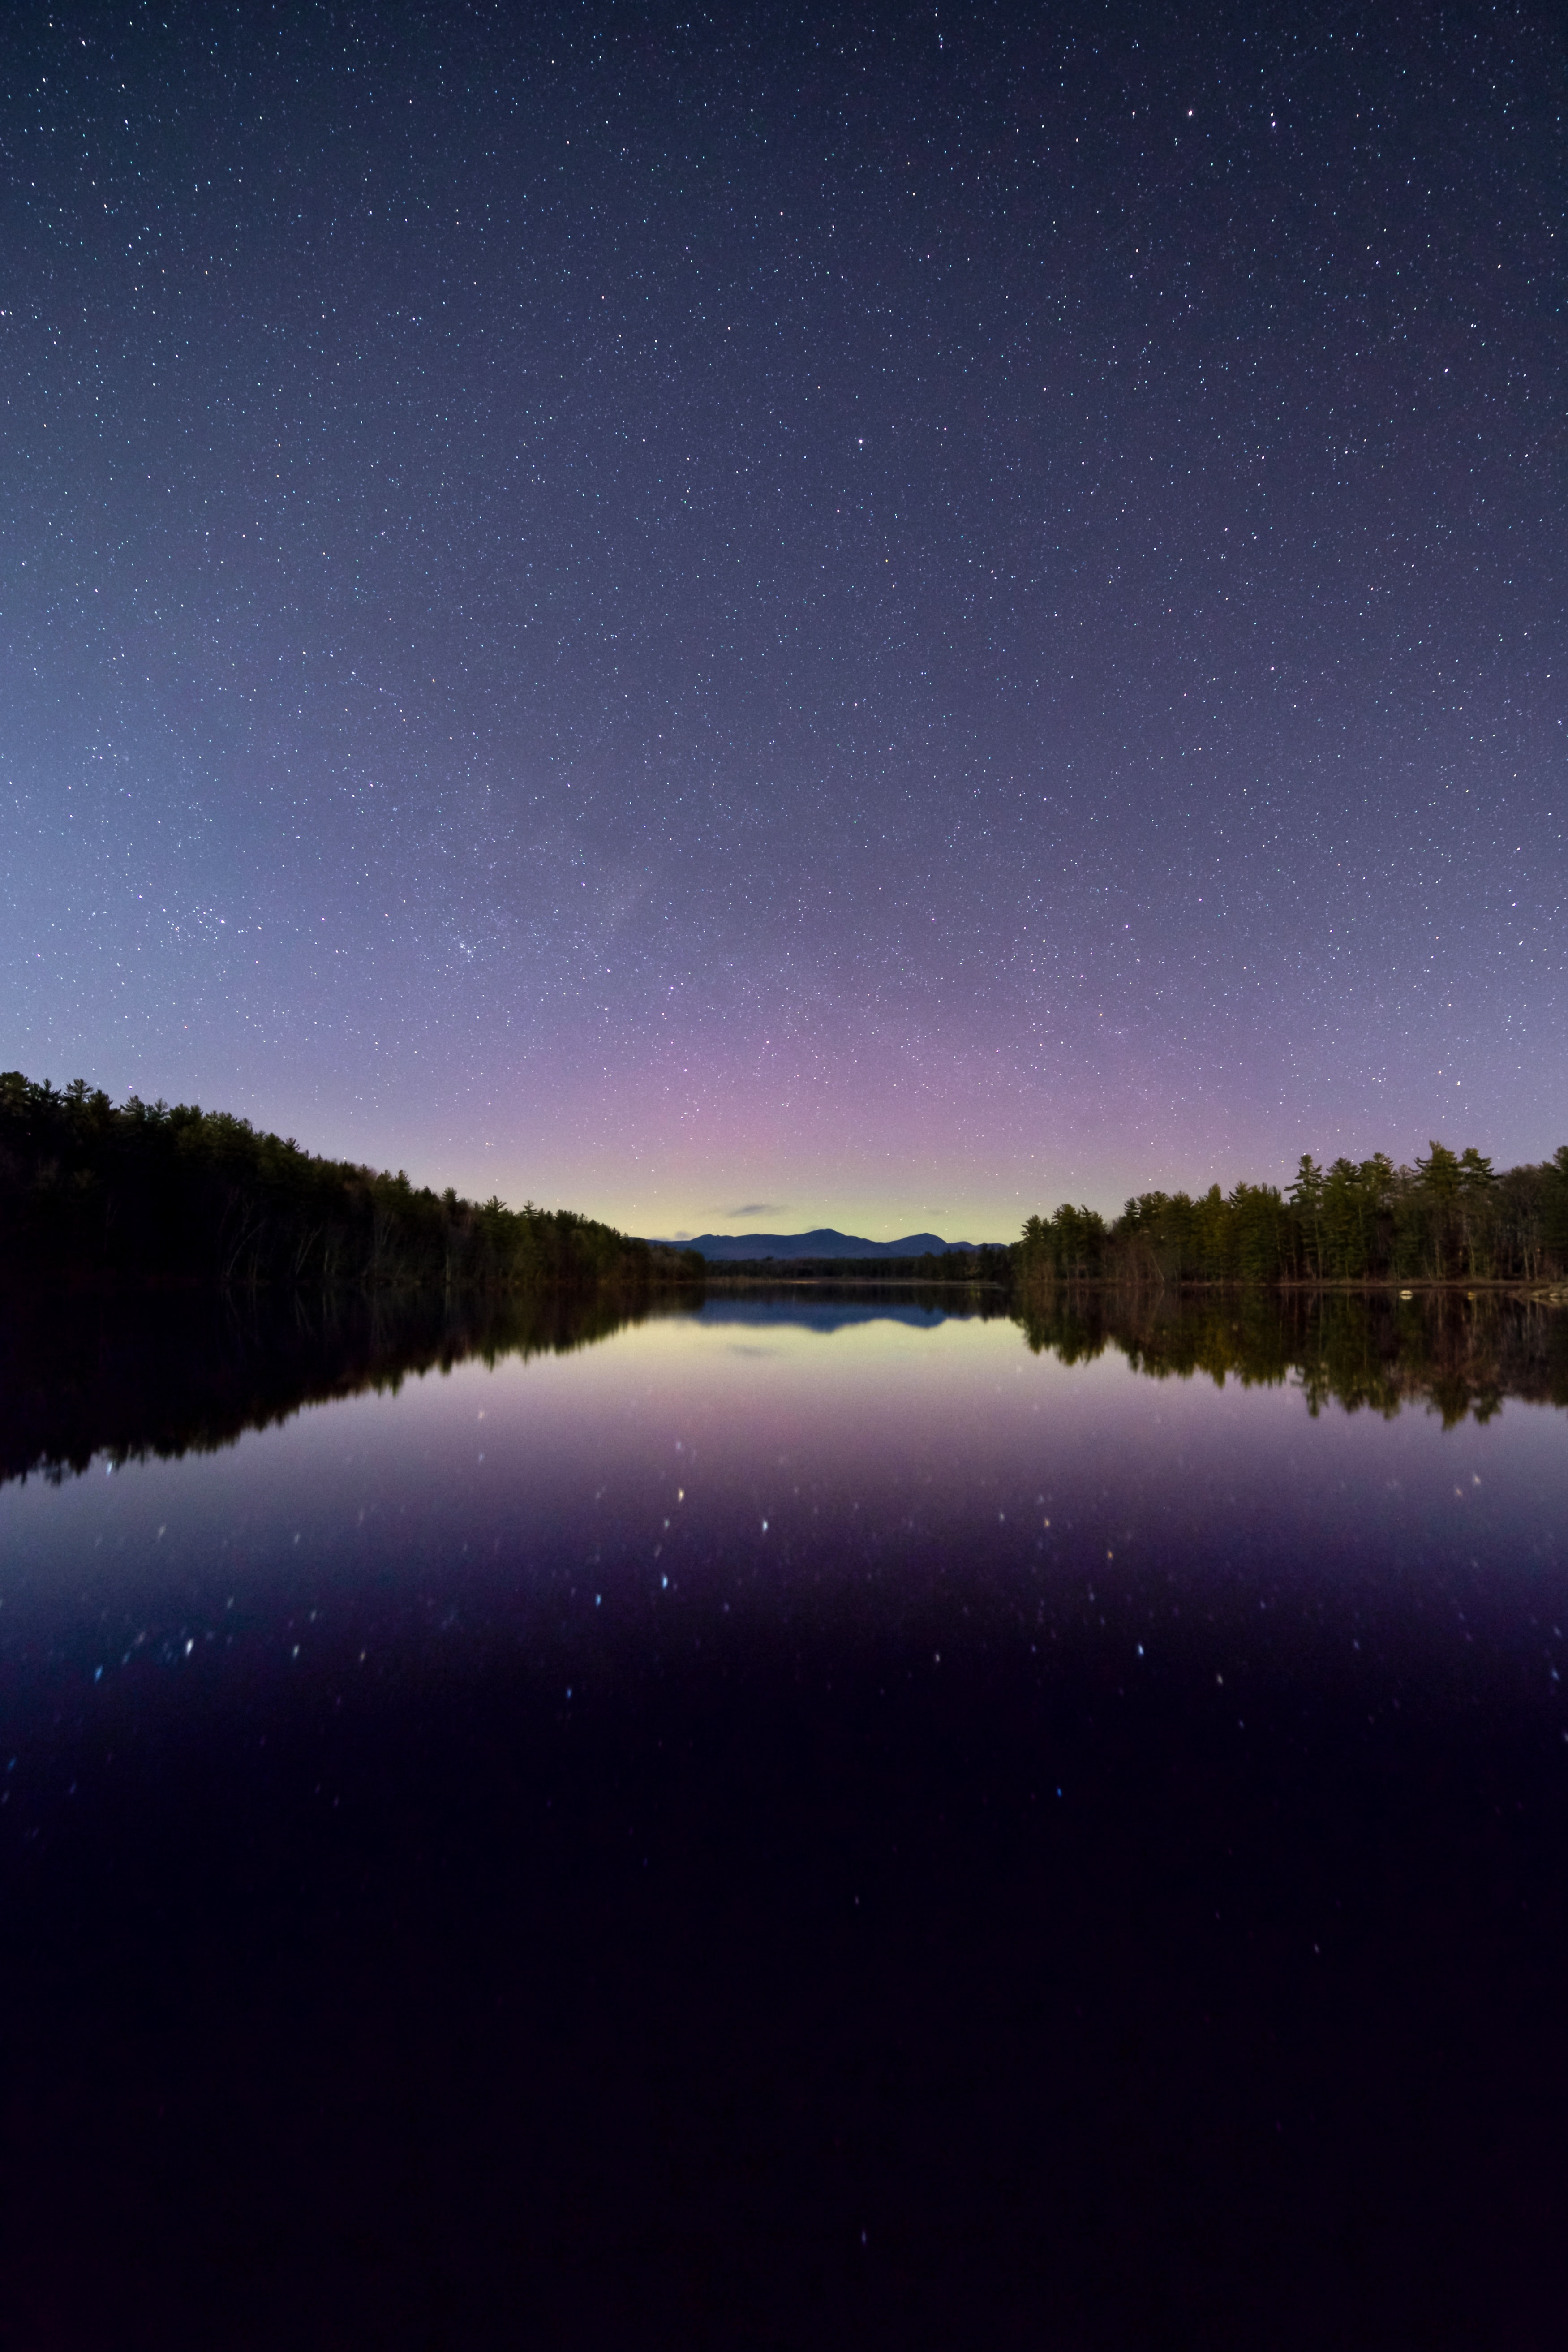 reflection photography of star and sky under calm body of water